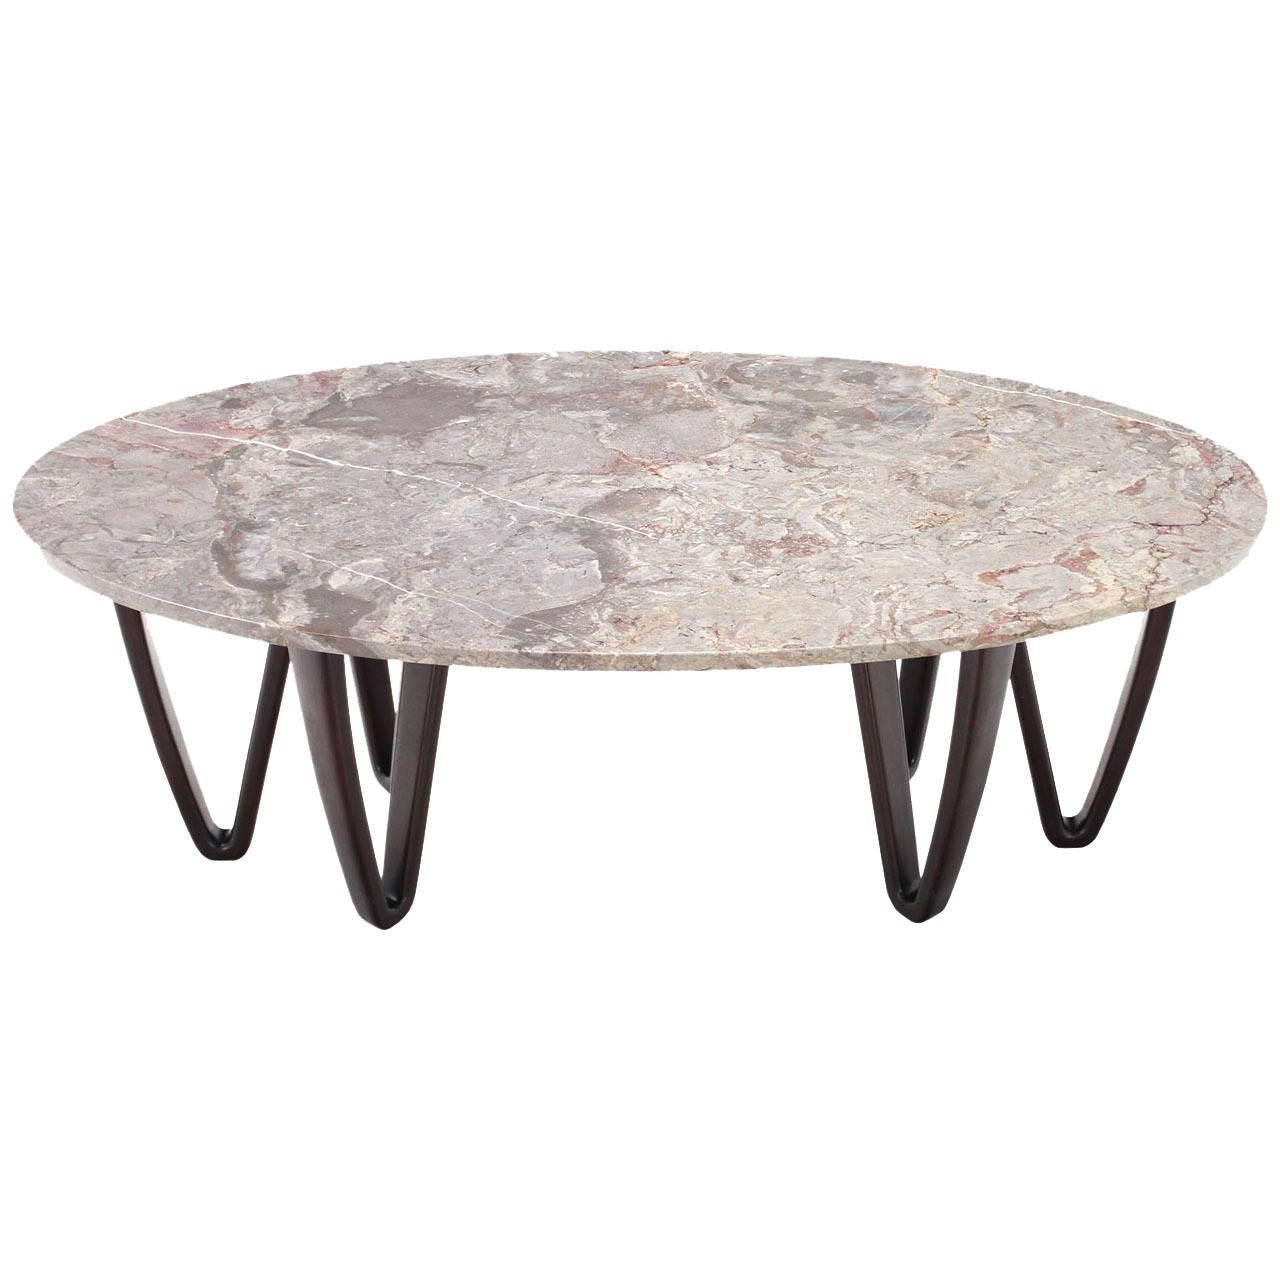 Home Decor: Amusing Marble Top Coffee Table And Oval Table On Wooden Pertaining To Famous Smart Large Round Marble Top Coffee Tables (Gallery 6 of 20)